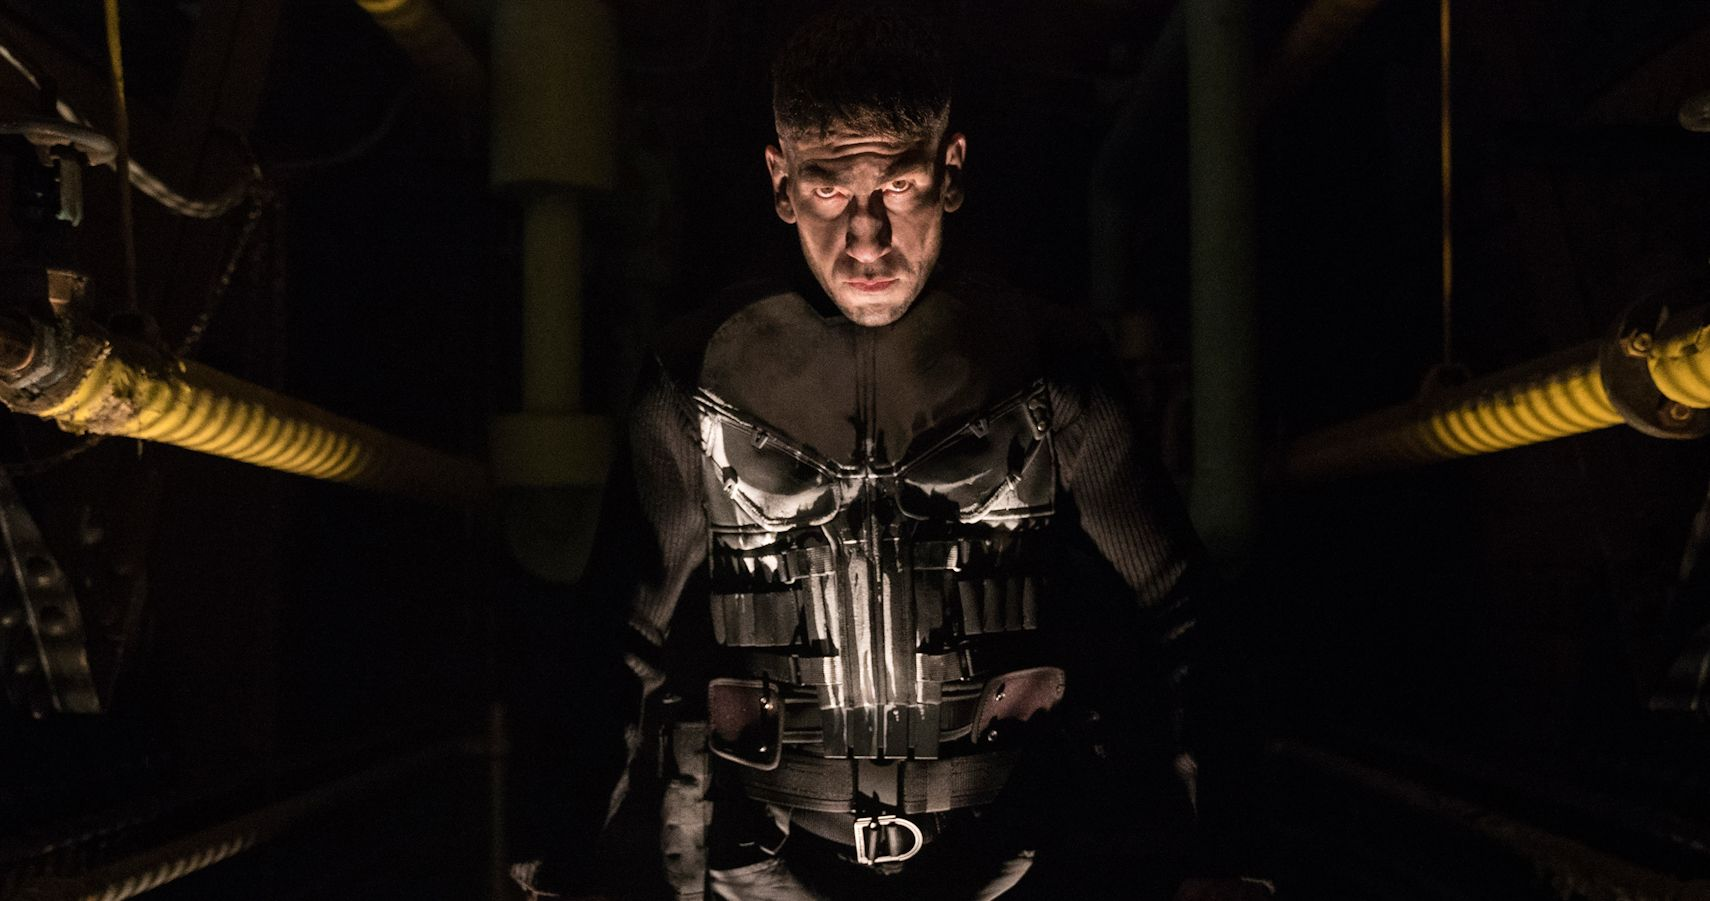 The Punisher: 10 Best Episodes From Season 1, Ranked (According To IMDb)